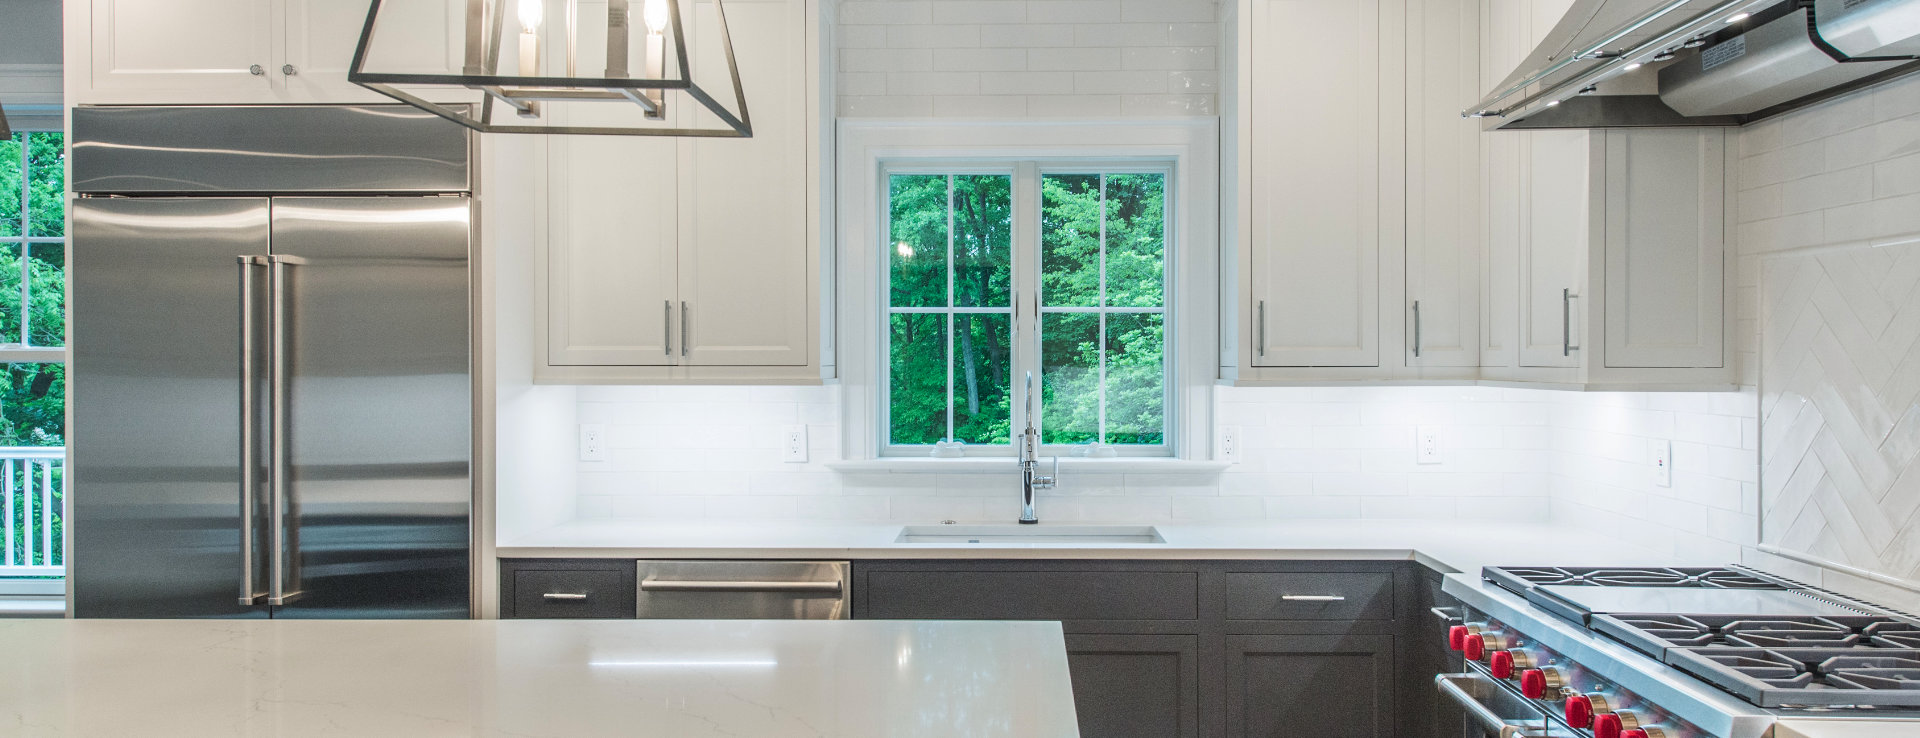 Westfield Kitchen And Bath Co Westfield Nj High Quality Luxury Custom Cabinetry And Design Services